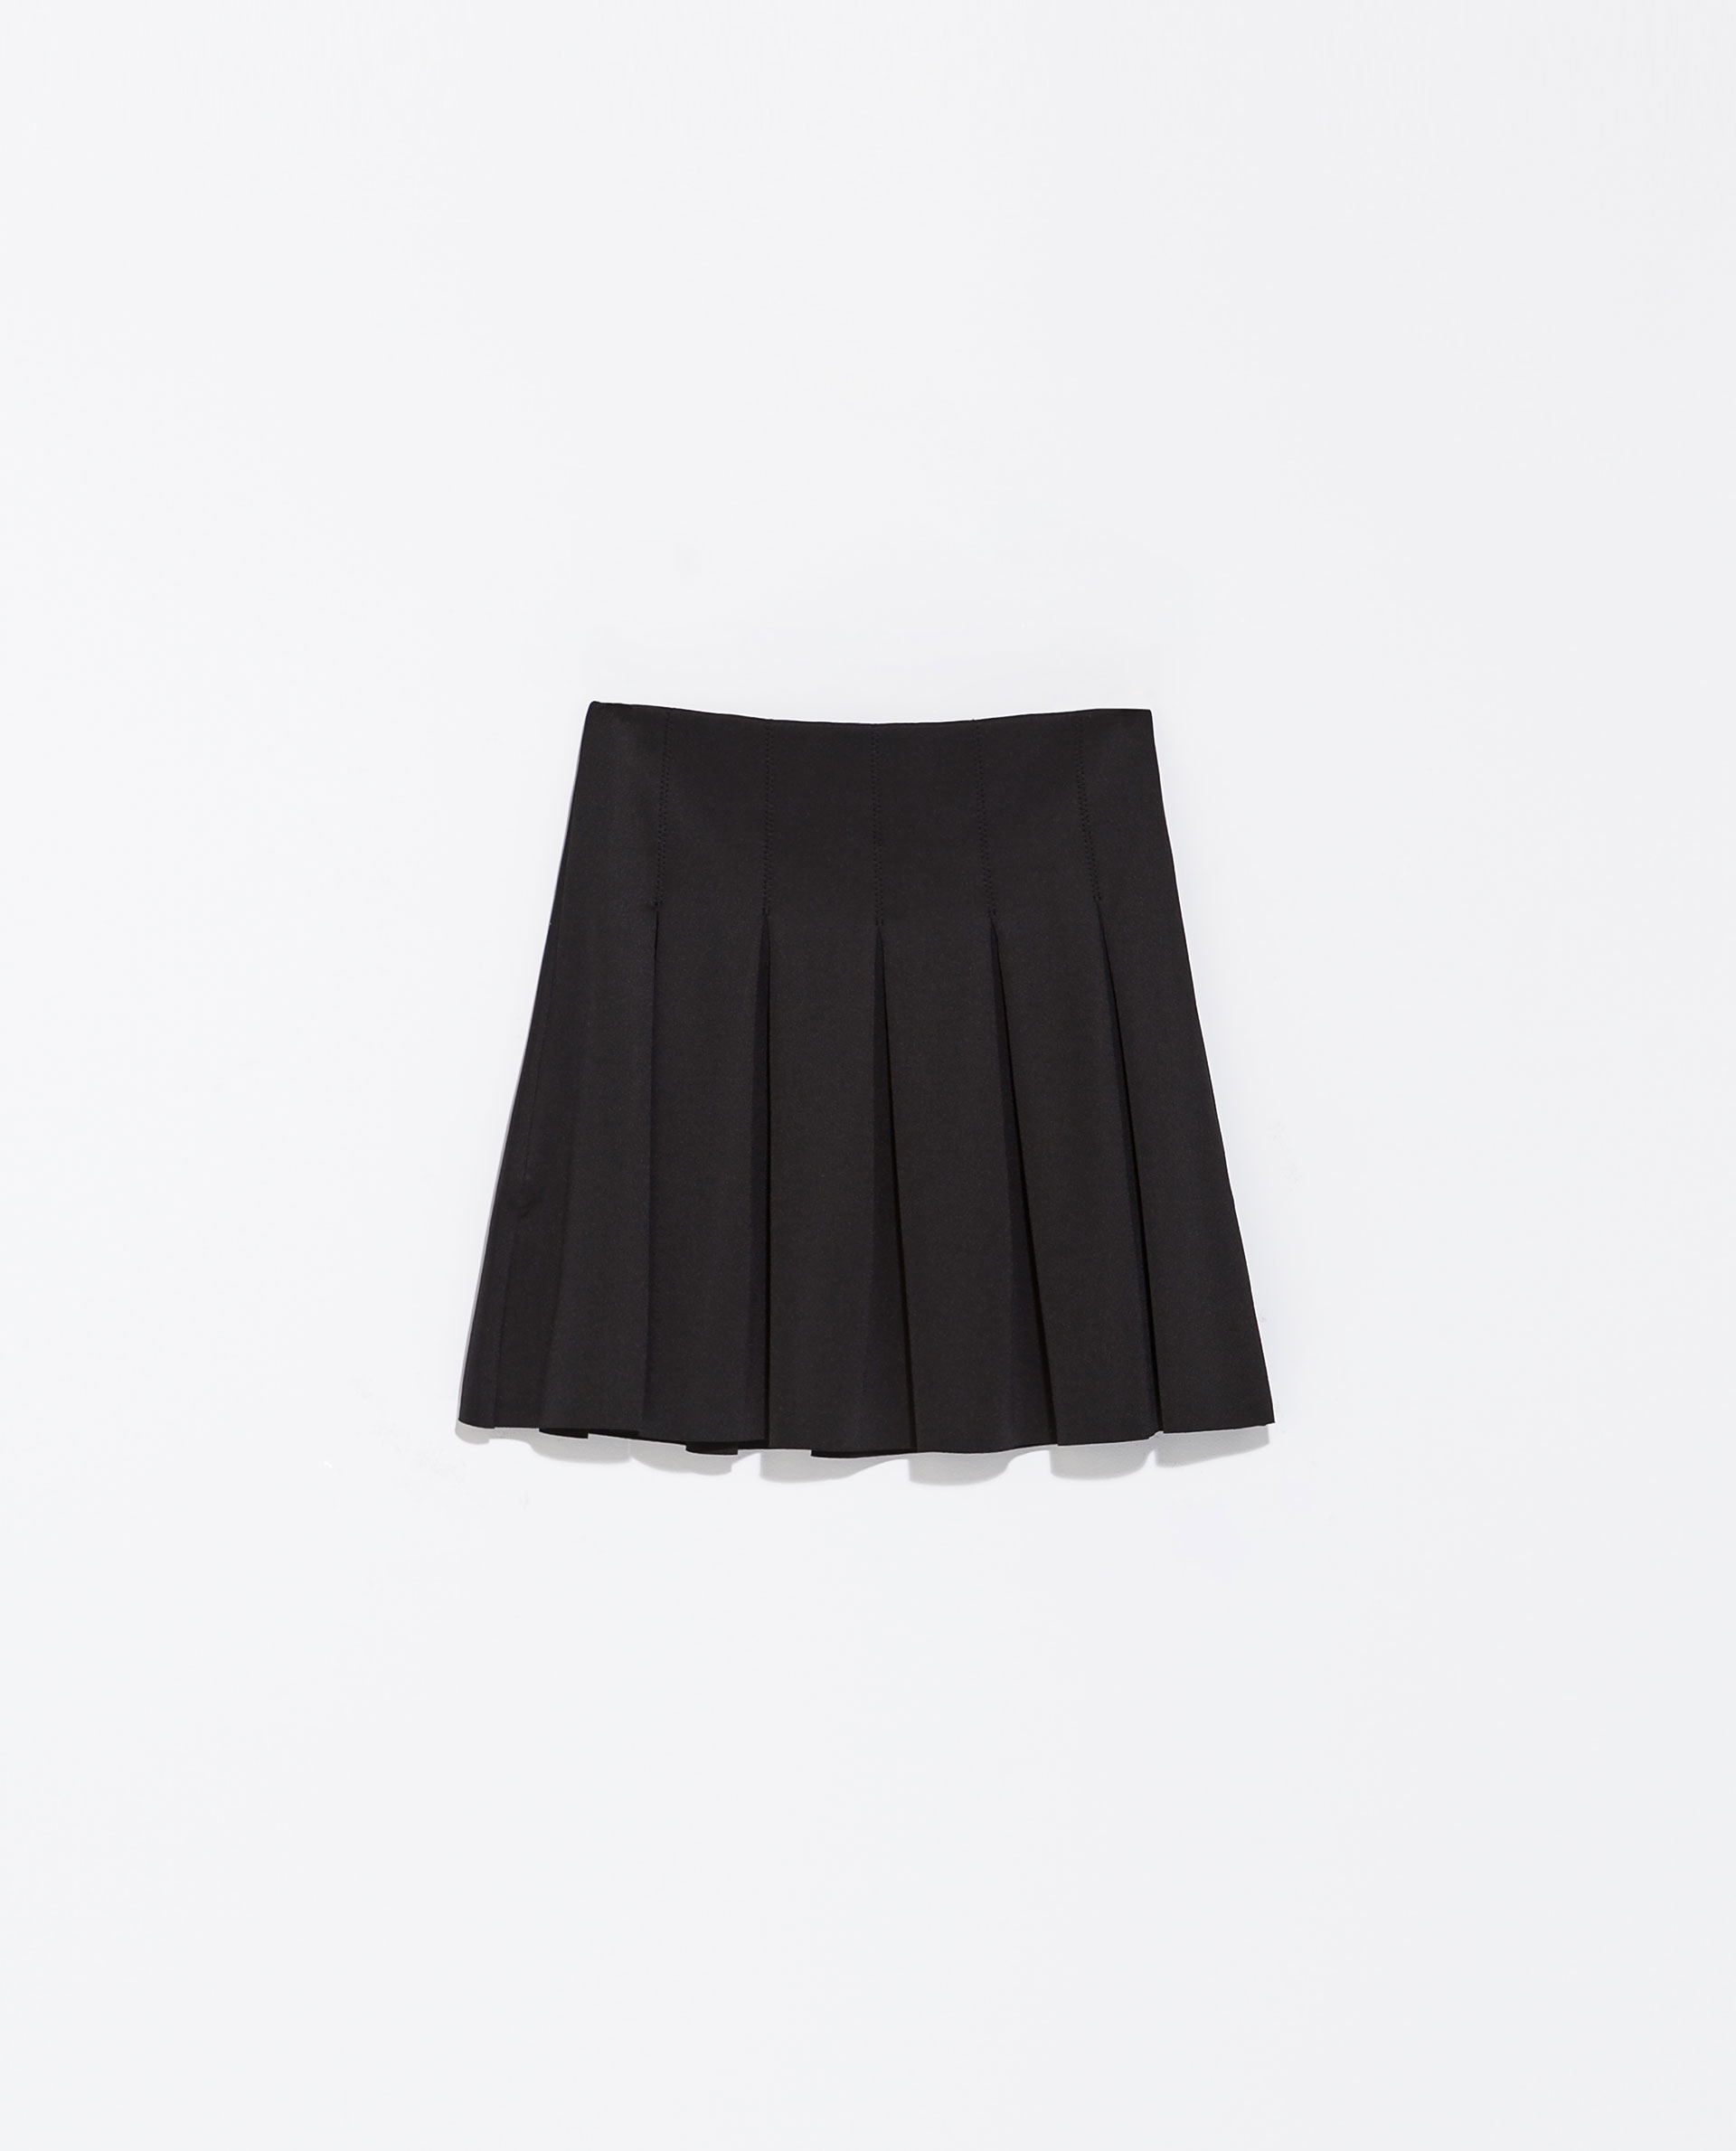 Zara Pleated Skirt in Black | Lyst